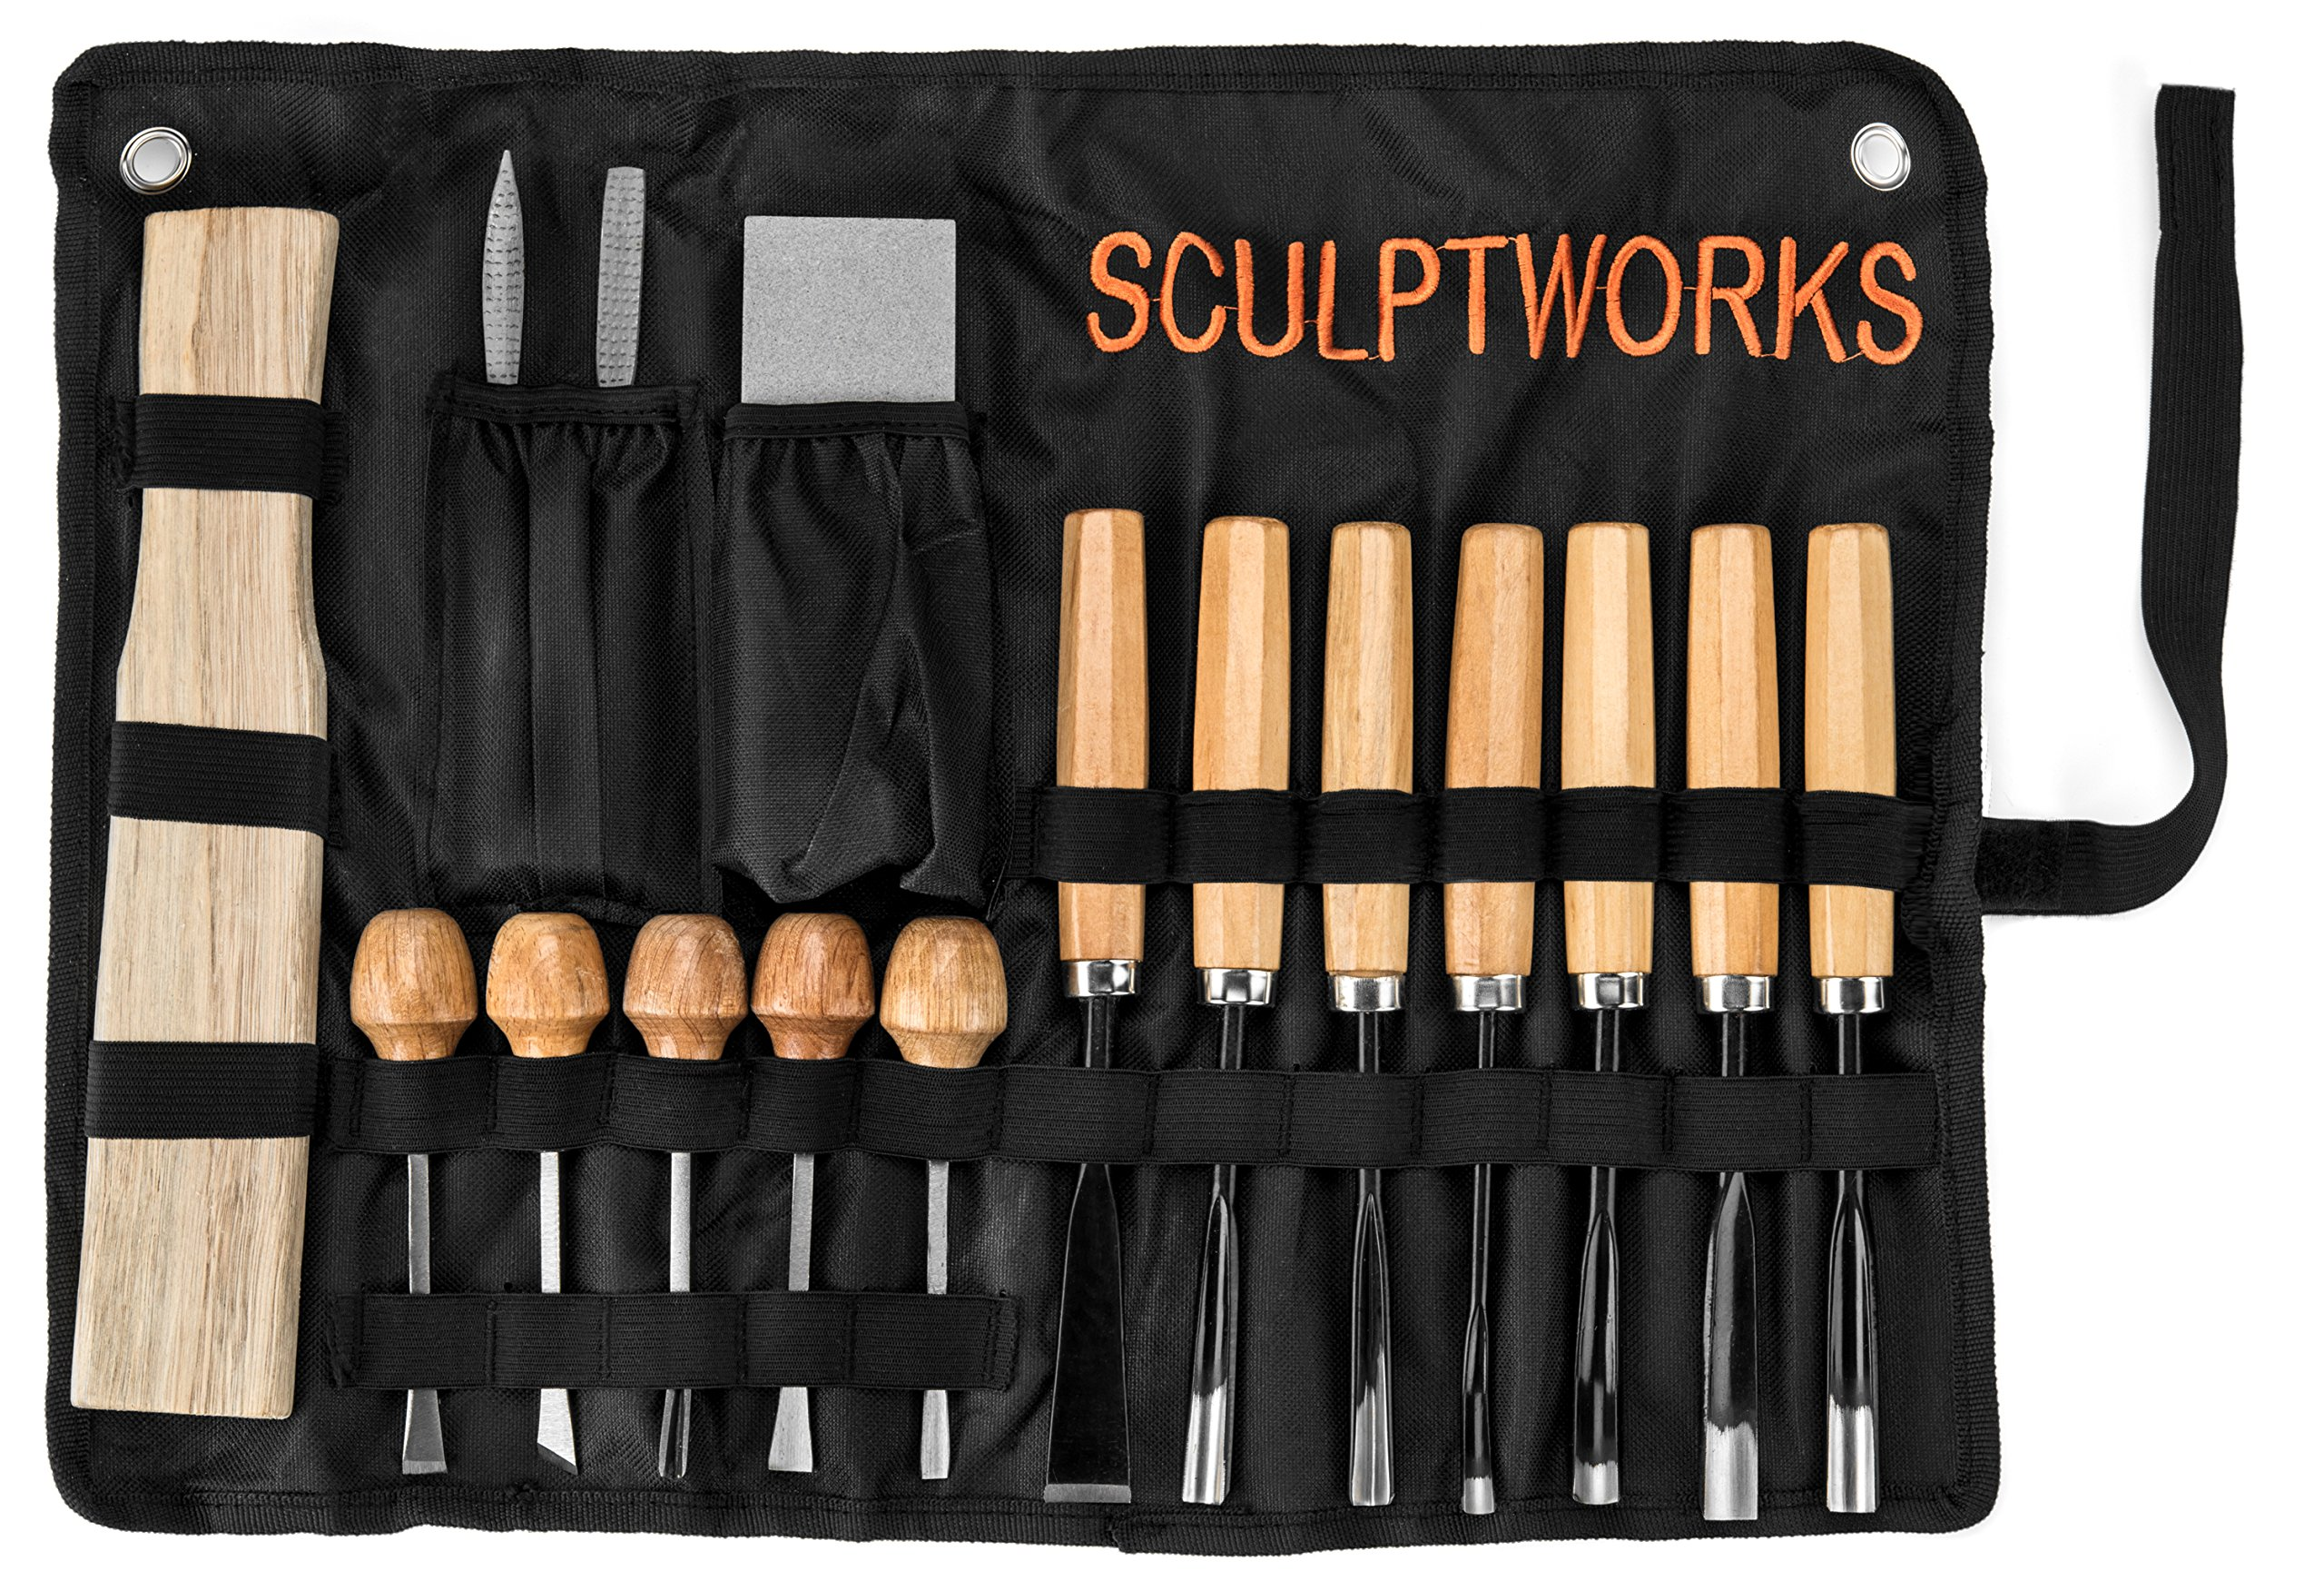 Wood Carving Chisel Tool Set 16 Piece from SculptWorks is designed for the Woodsculpting Novice, includes Carving File, Wood Mallet & Sharpening stone & very helpful Wood Sculpting Informational Flyer